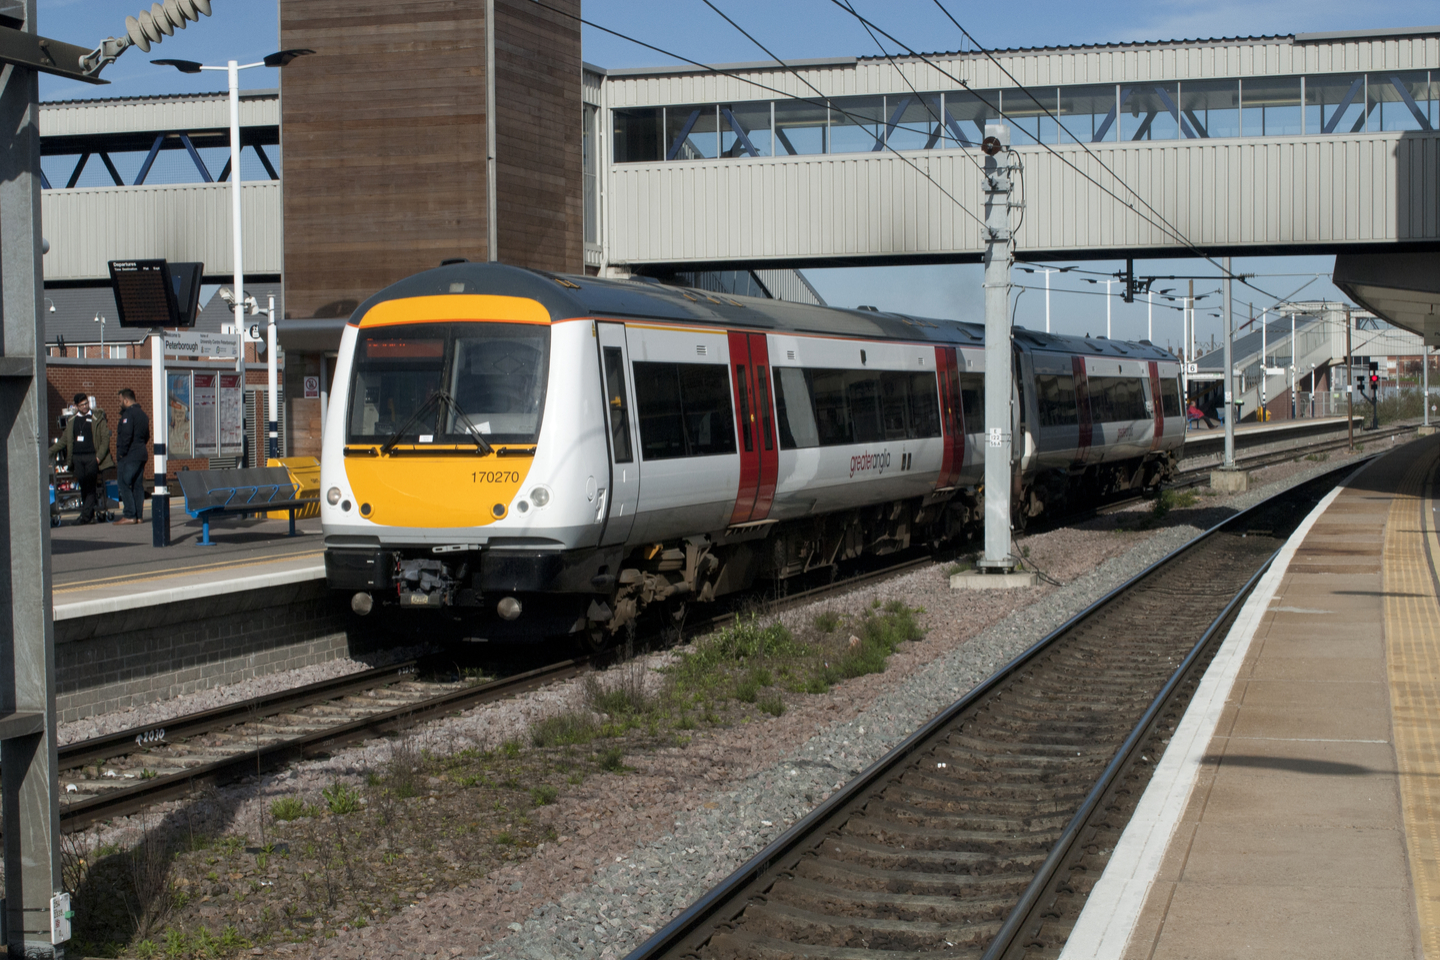 Internet deal as important as railways for Peterborough